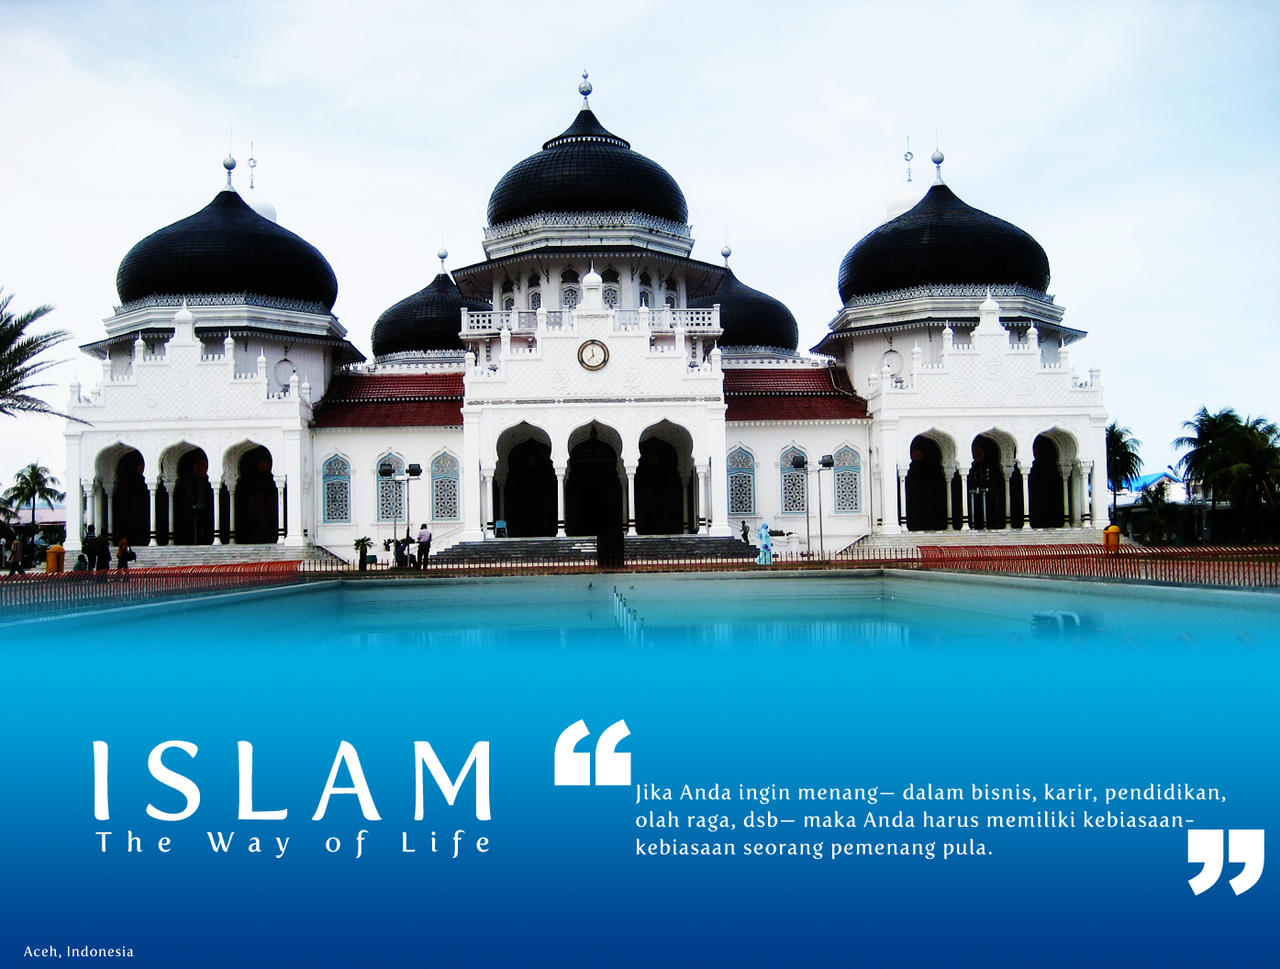 islam a way of life Unlike the other two, islam the culture was mainly formulated by conquered peoples rather than by arabians from the middle of the eighth century to the end of the twelfth century, it was unsurpassed in its literary, scientific, and philosophic output.